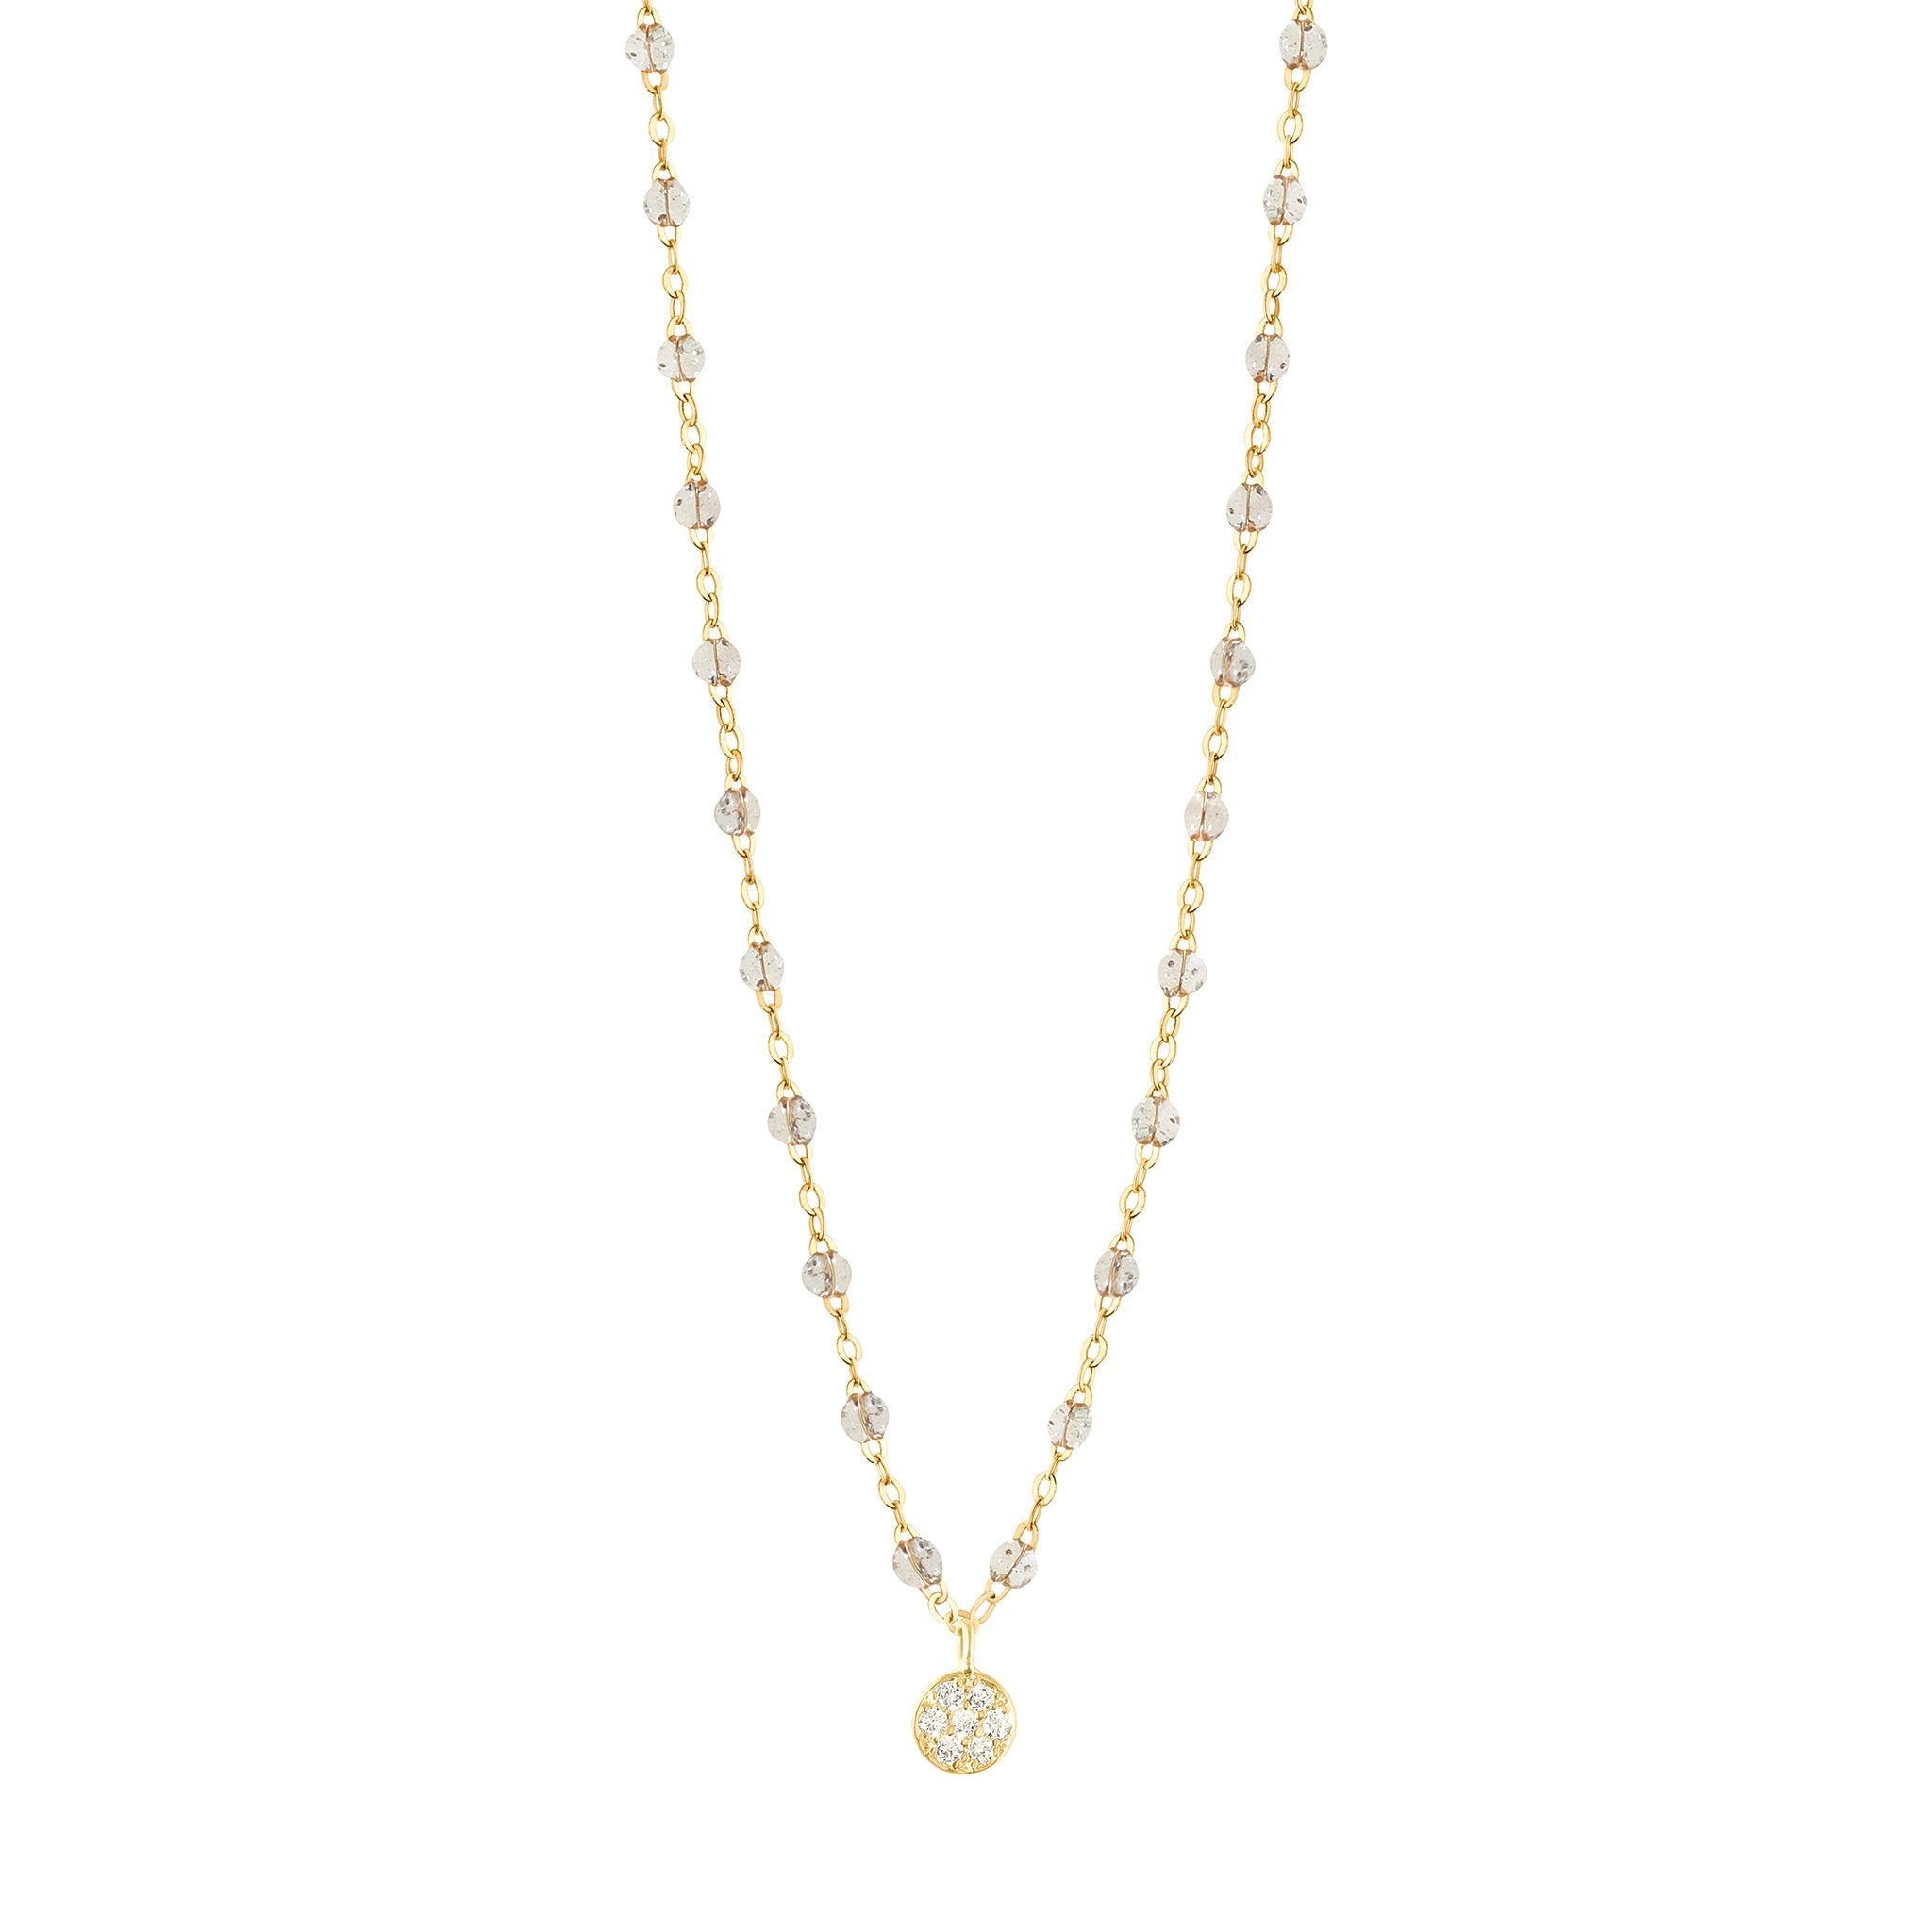 Gigi Clozeau - Puce Classic Gigi Sparkle diamonds necklace, Yellow Gold, 16.5